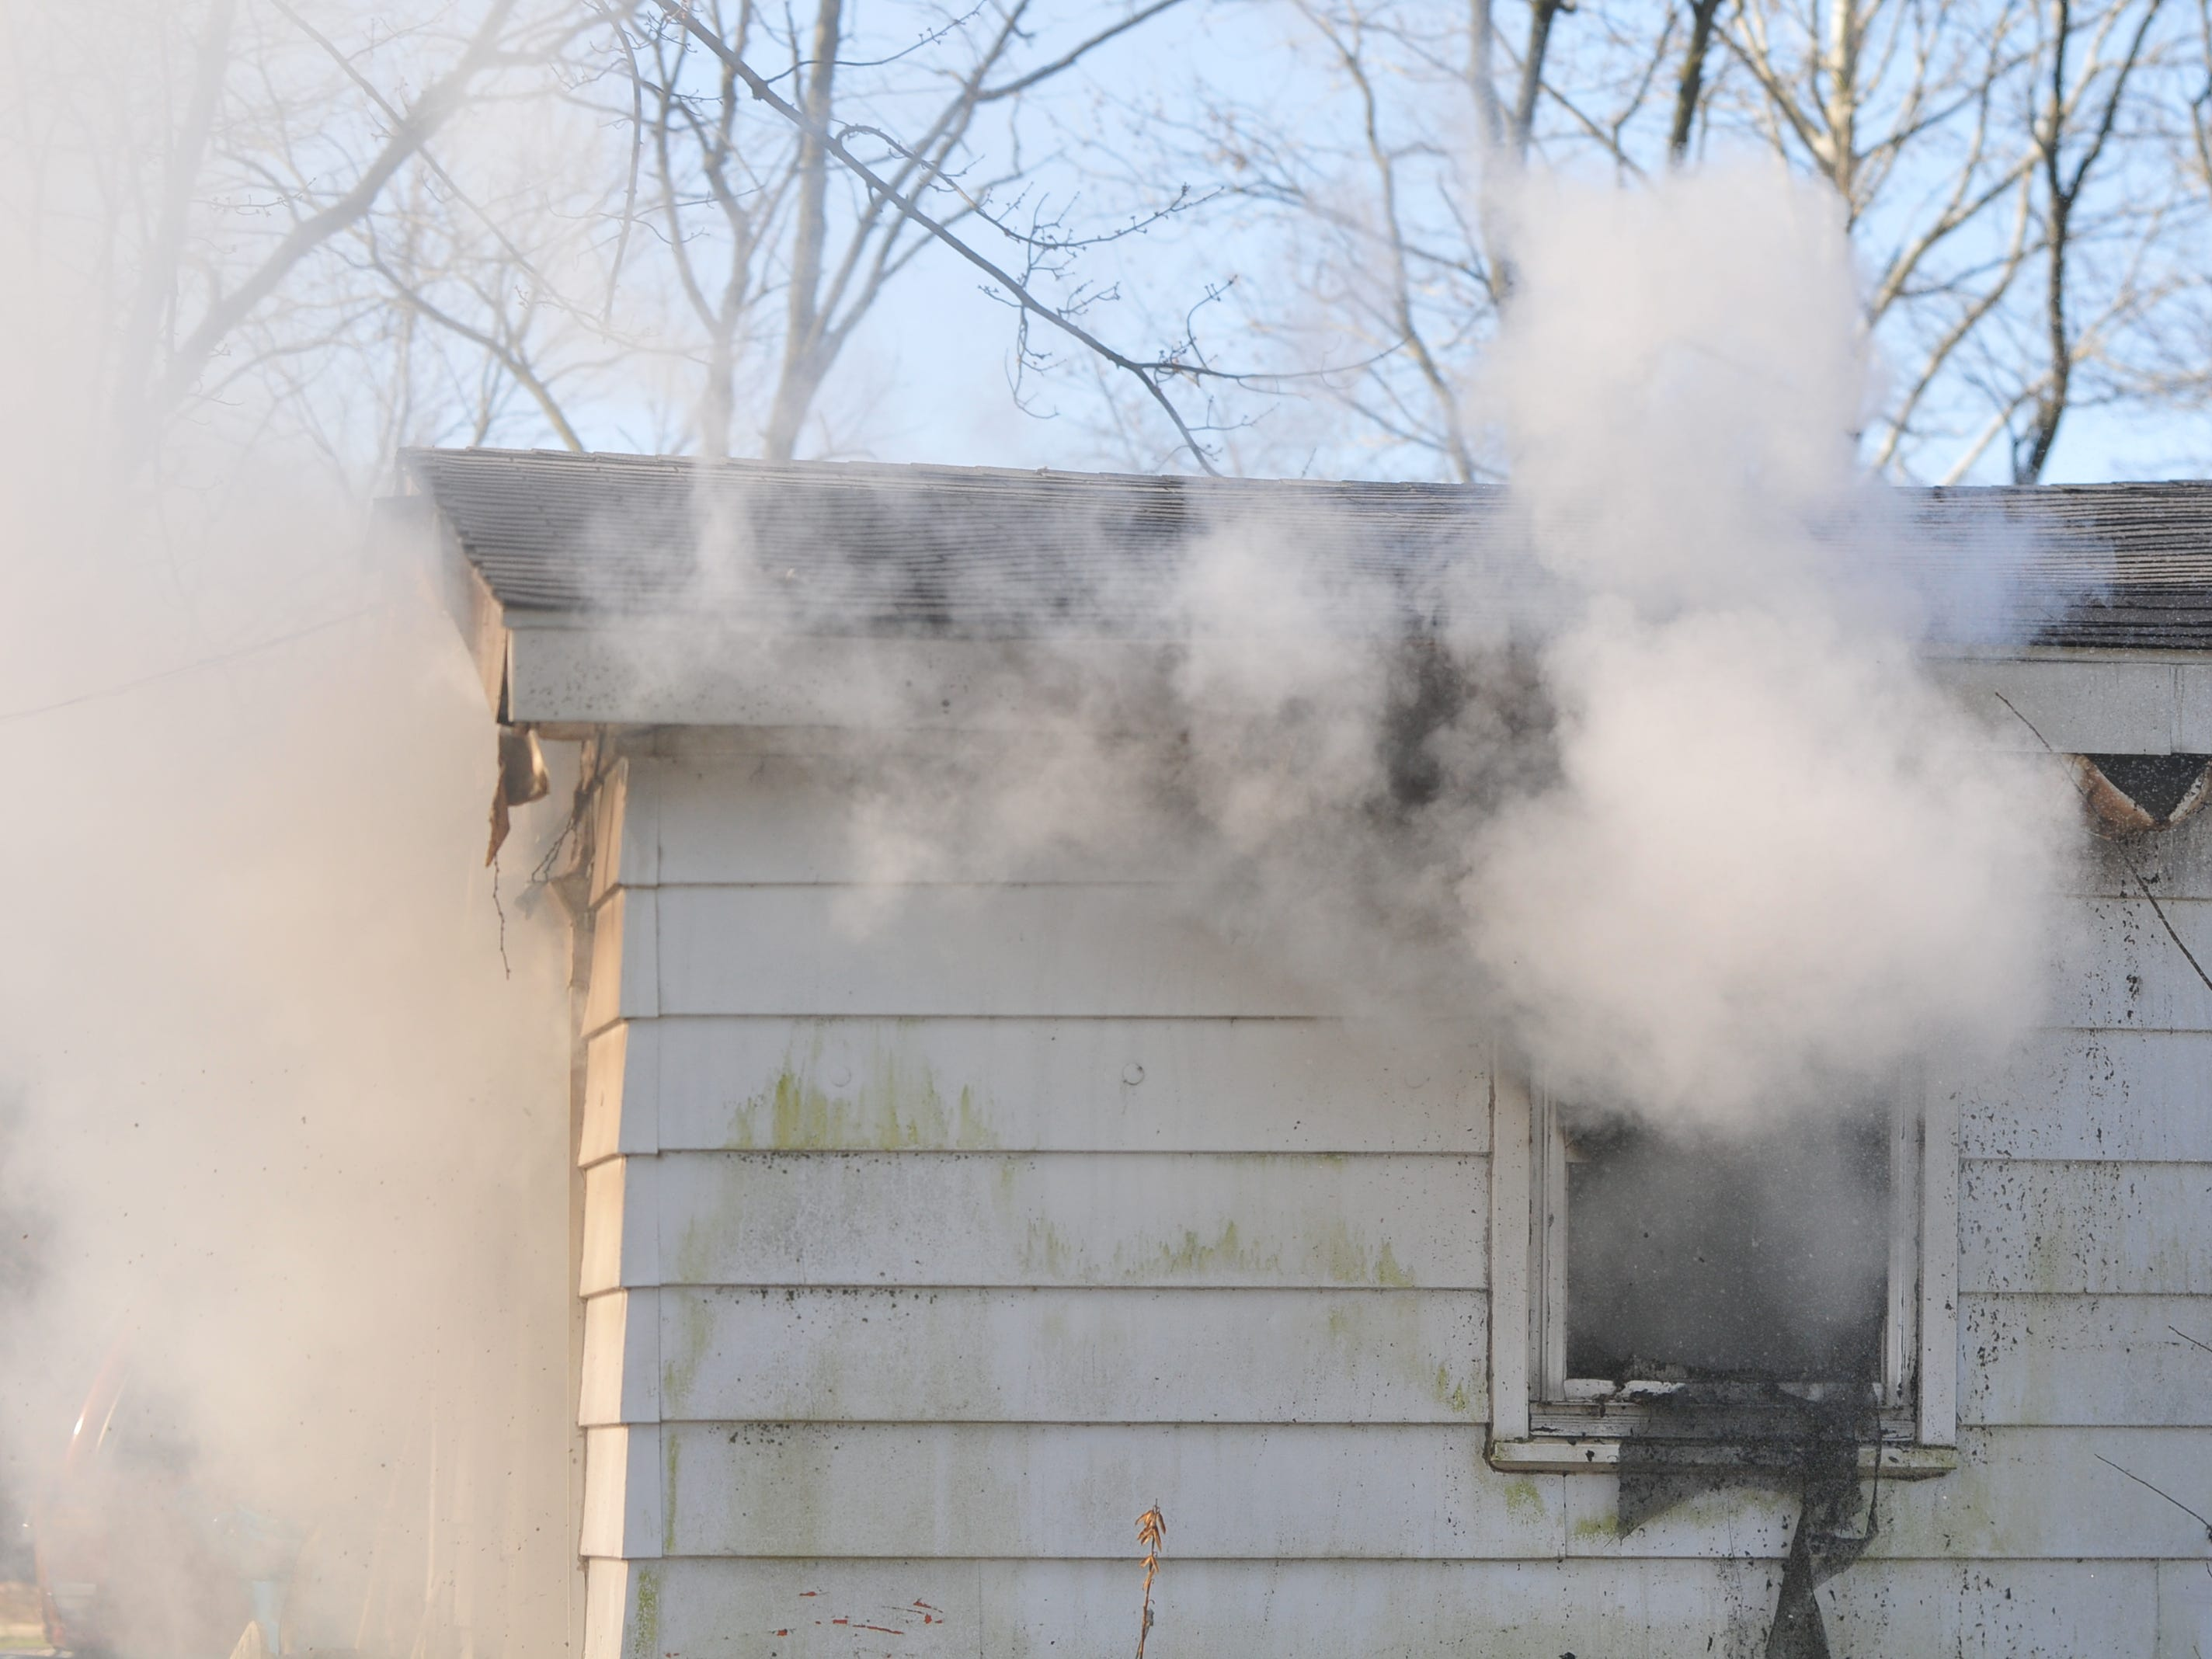 Smoke pours from a house in the 2100 block of South 11th Street on Wednesday morning.